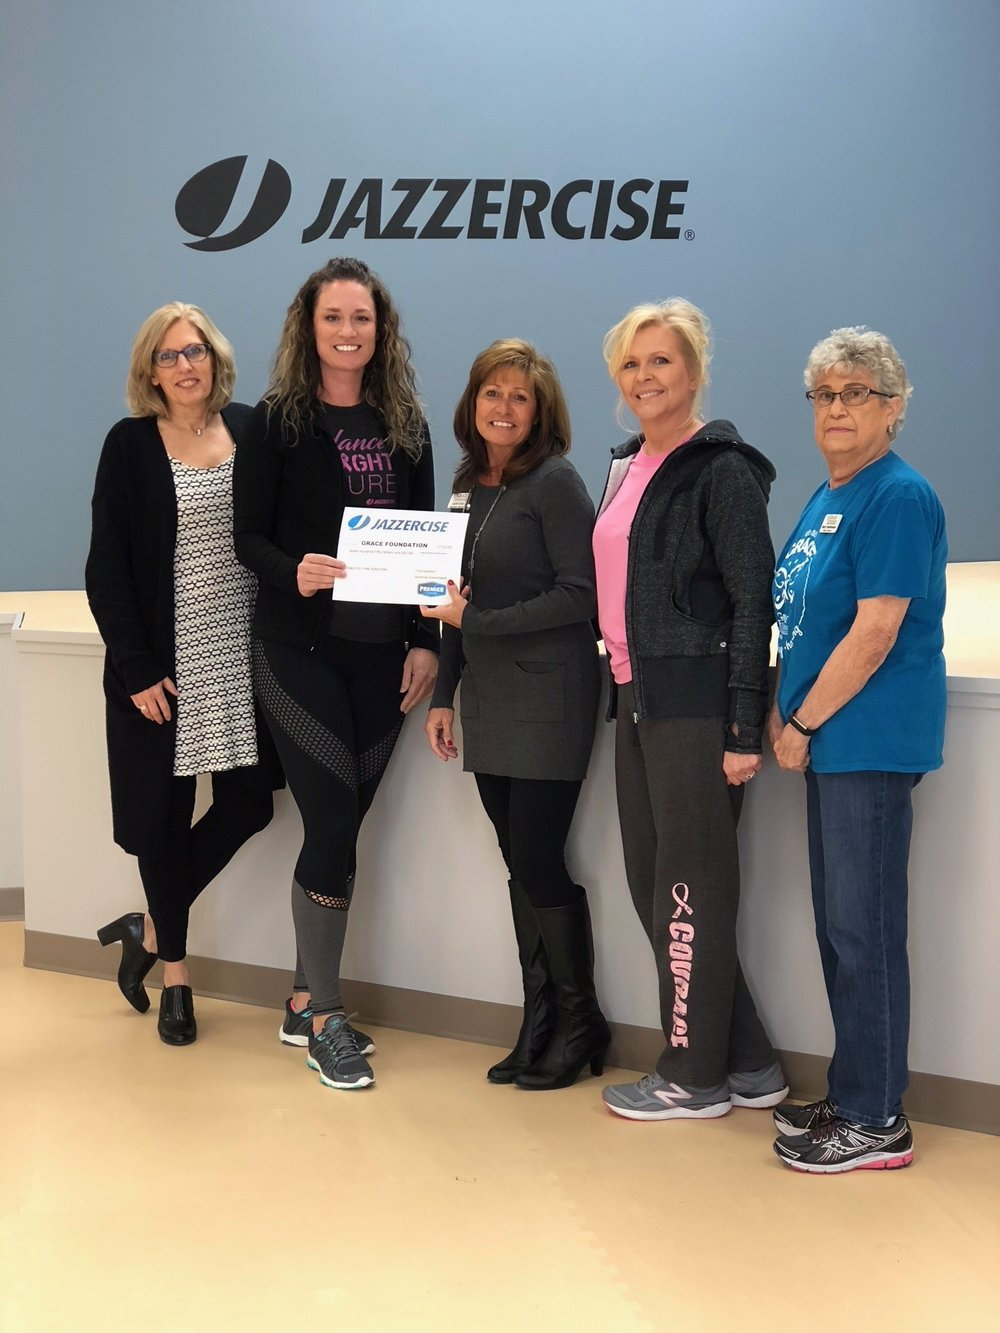 Thanks, GI Jazzercise! - Grand Island Jazzercise raised $750 for the GRACE Foundation during October from their members!